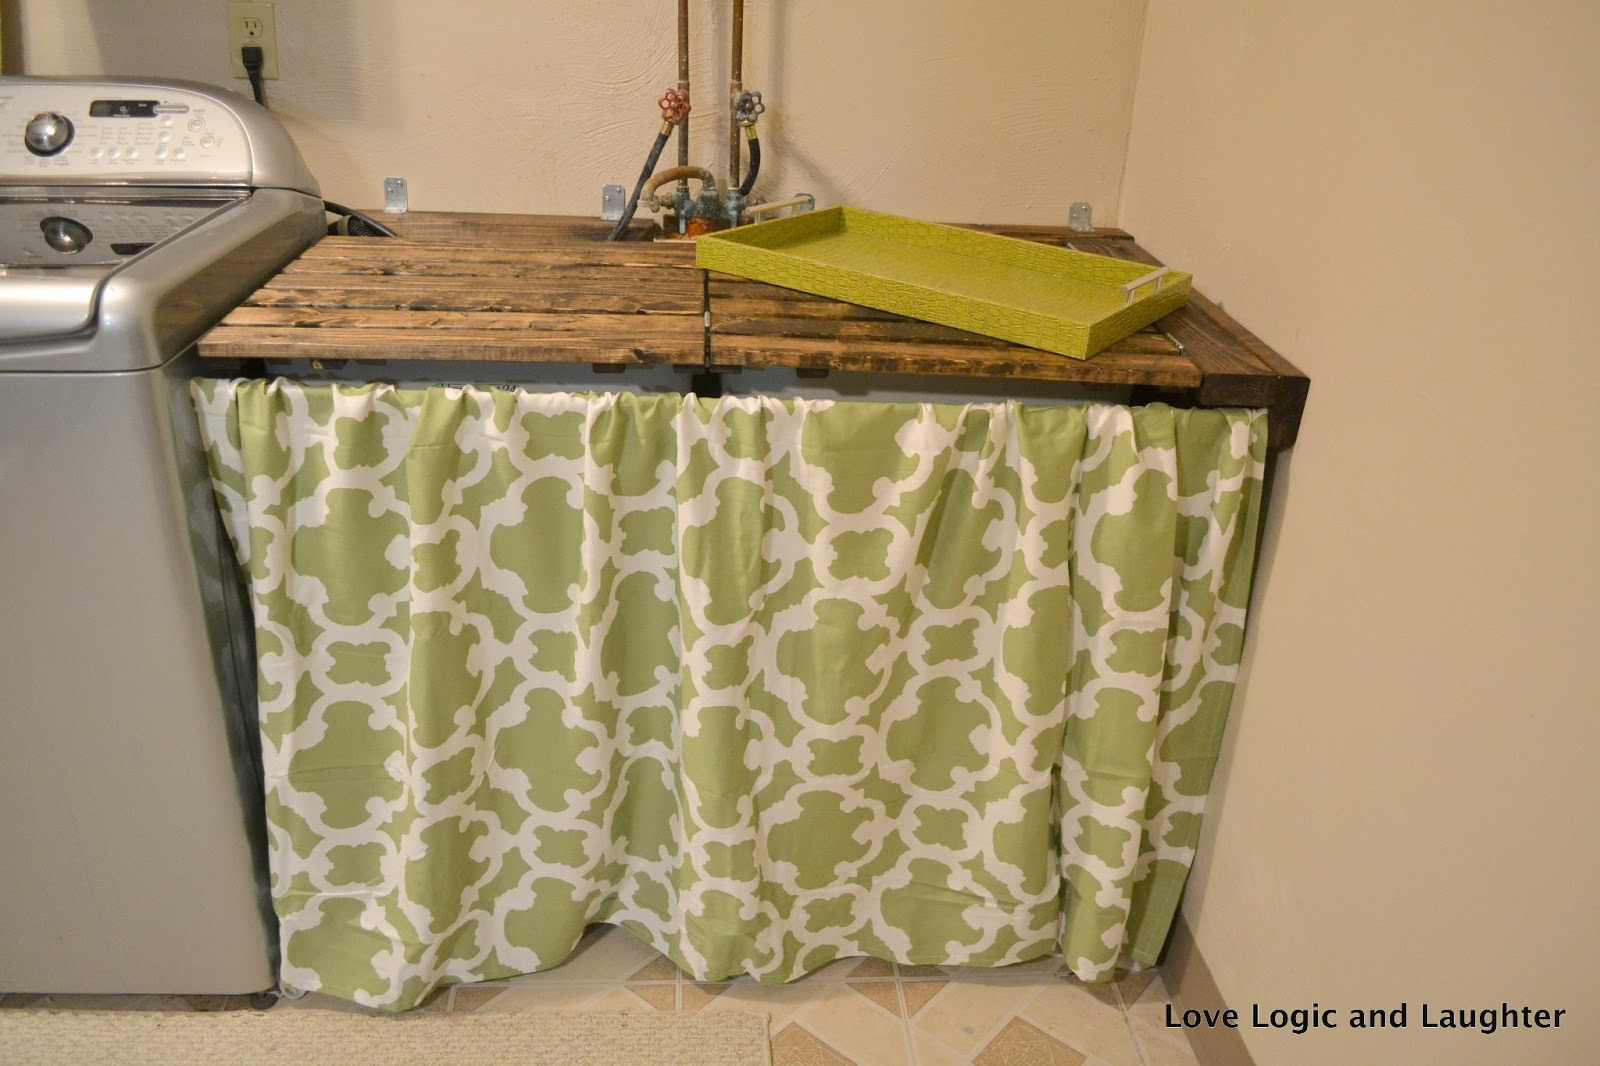 Links For Details On The Individual Laundry Room Makeover Diy Projects Utility Sink Cover Lid